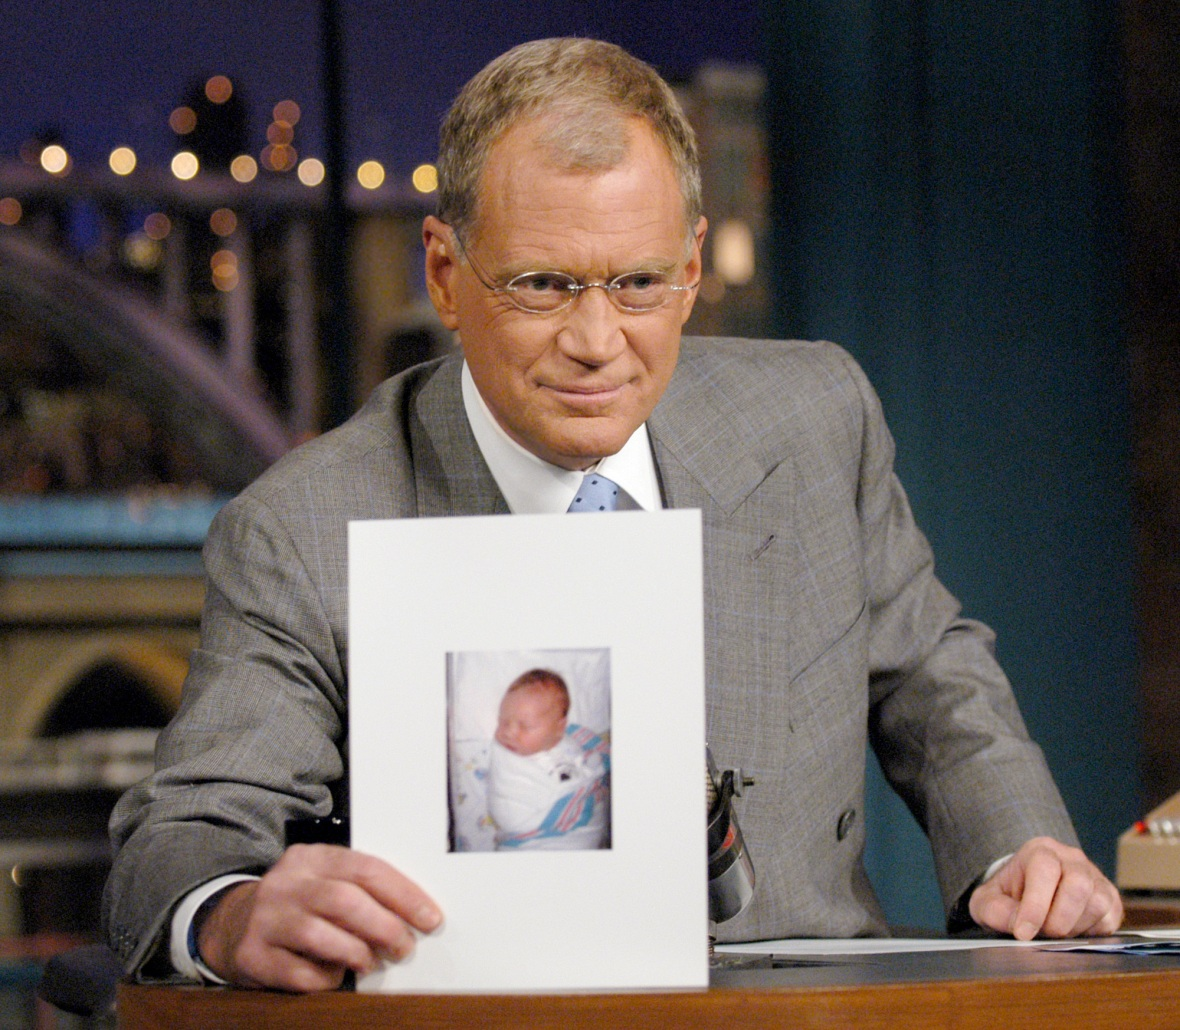 david letterman son getty images